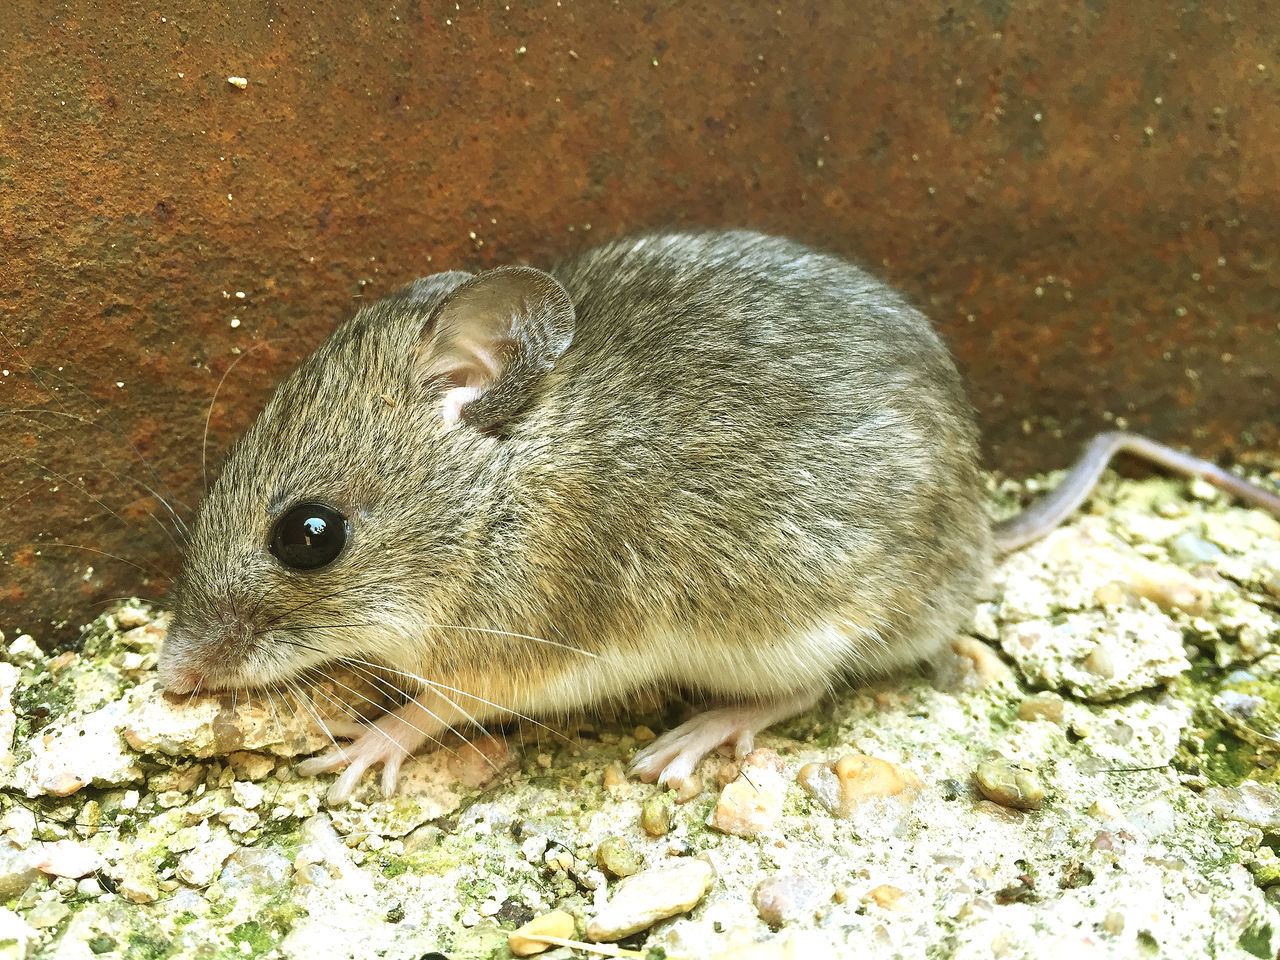 Animal Animal Themes Animals In The Wild Close-up Day Environment Harmful Harmful Harmful, Detrimental, Destructive, Injurious, Damaging, Deleterious; Malign, Noxious, Poisonous High Angle View Mammal Mouse Mouses Mus Musculus Nature No People Outdoors Pest Pest Control Plague Rat Rats Wild